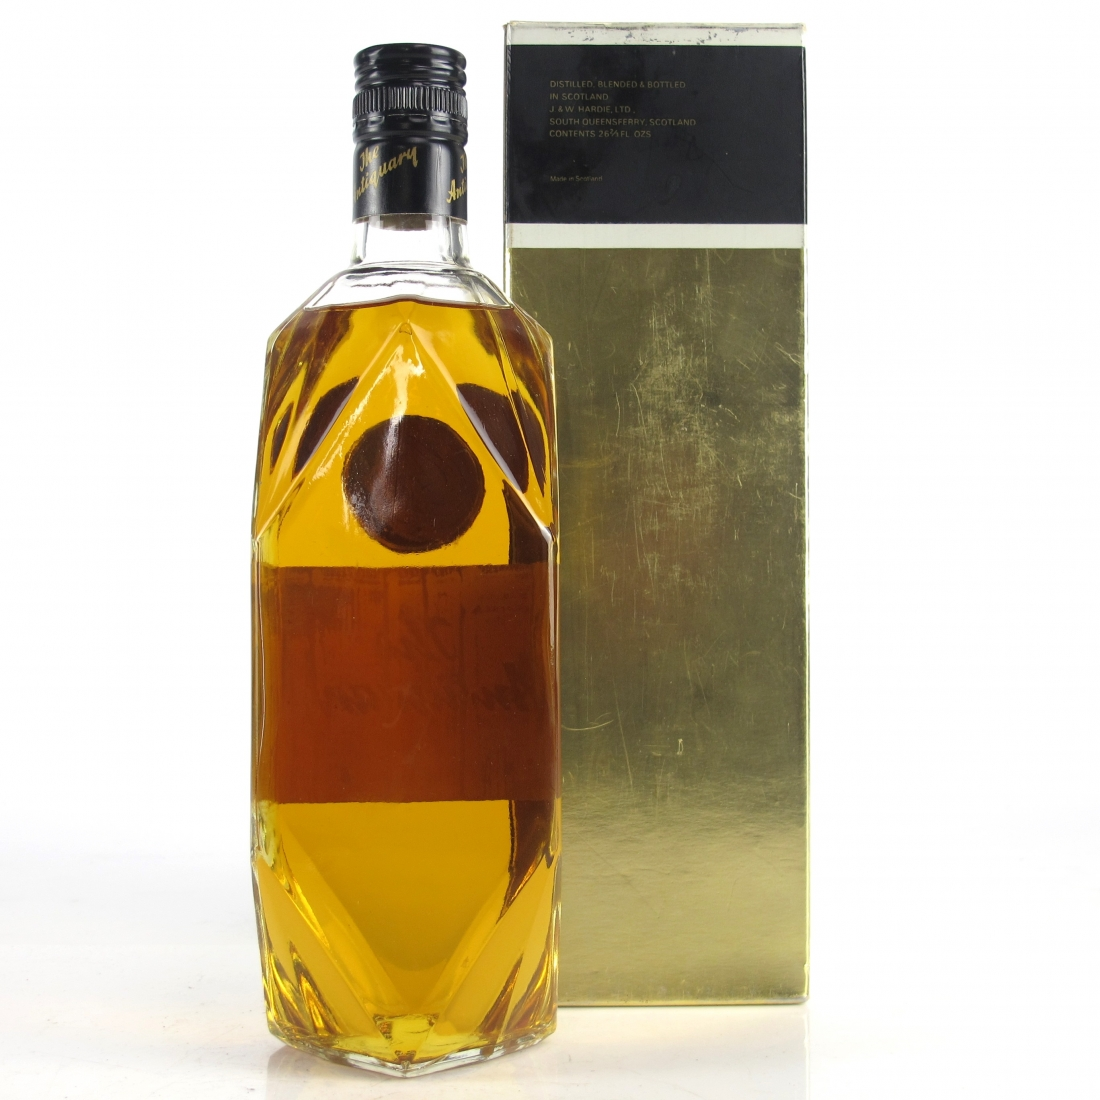 Antiquary De Luxe Old Scotch Whisky 1970s